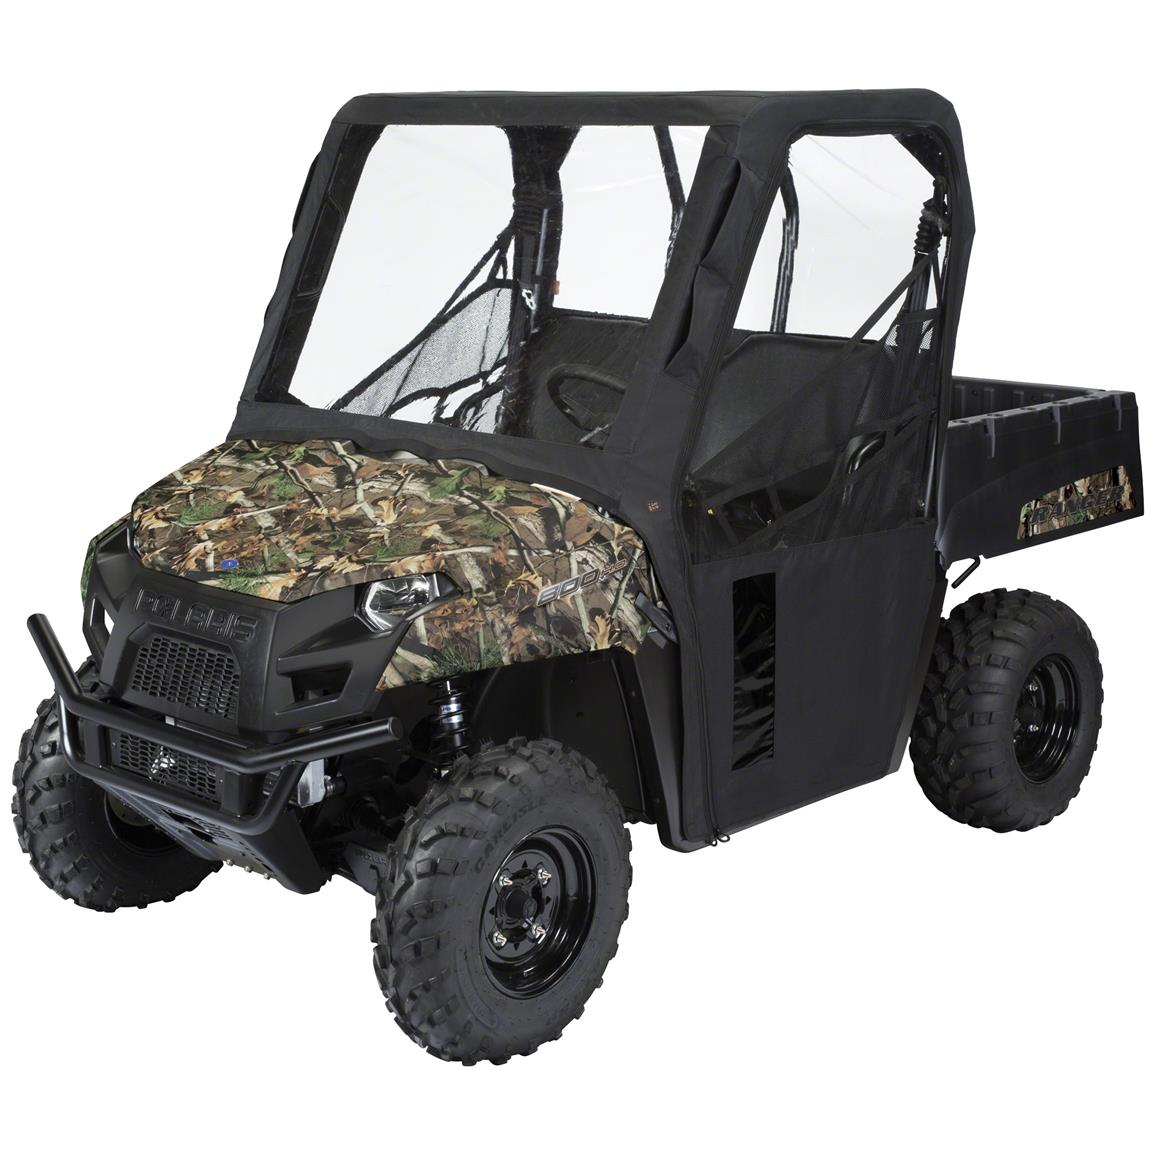 Quad Gear UTV Cab Enclosure, Polaris Ranger 2002-2008 Series, Black